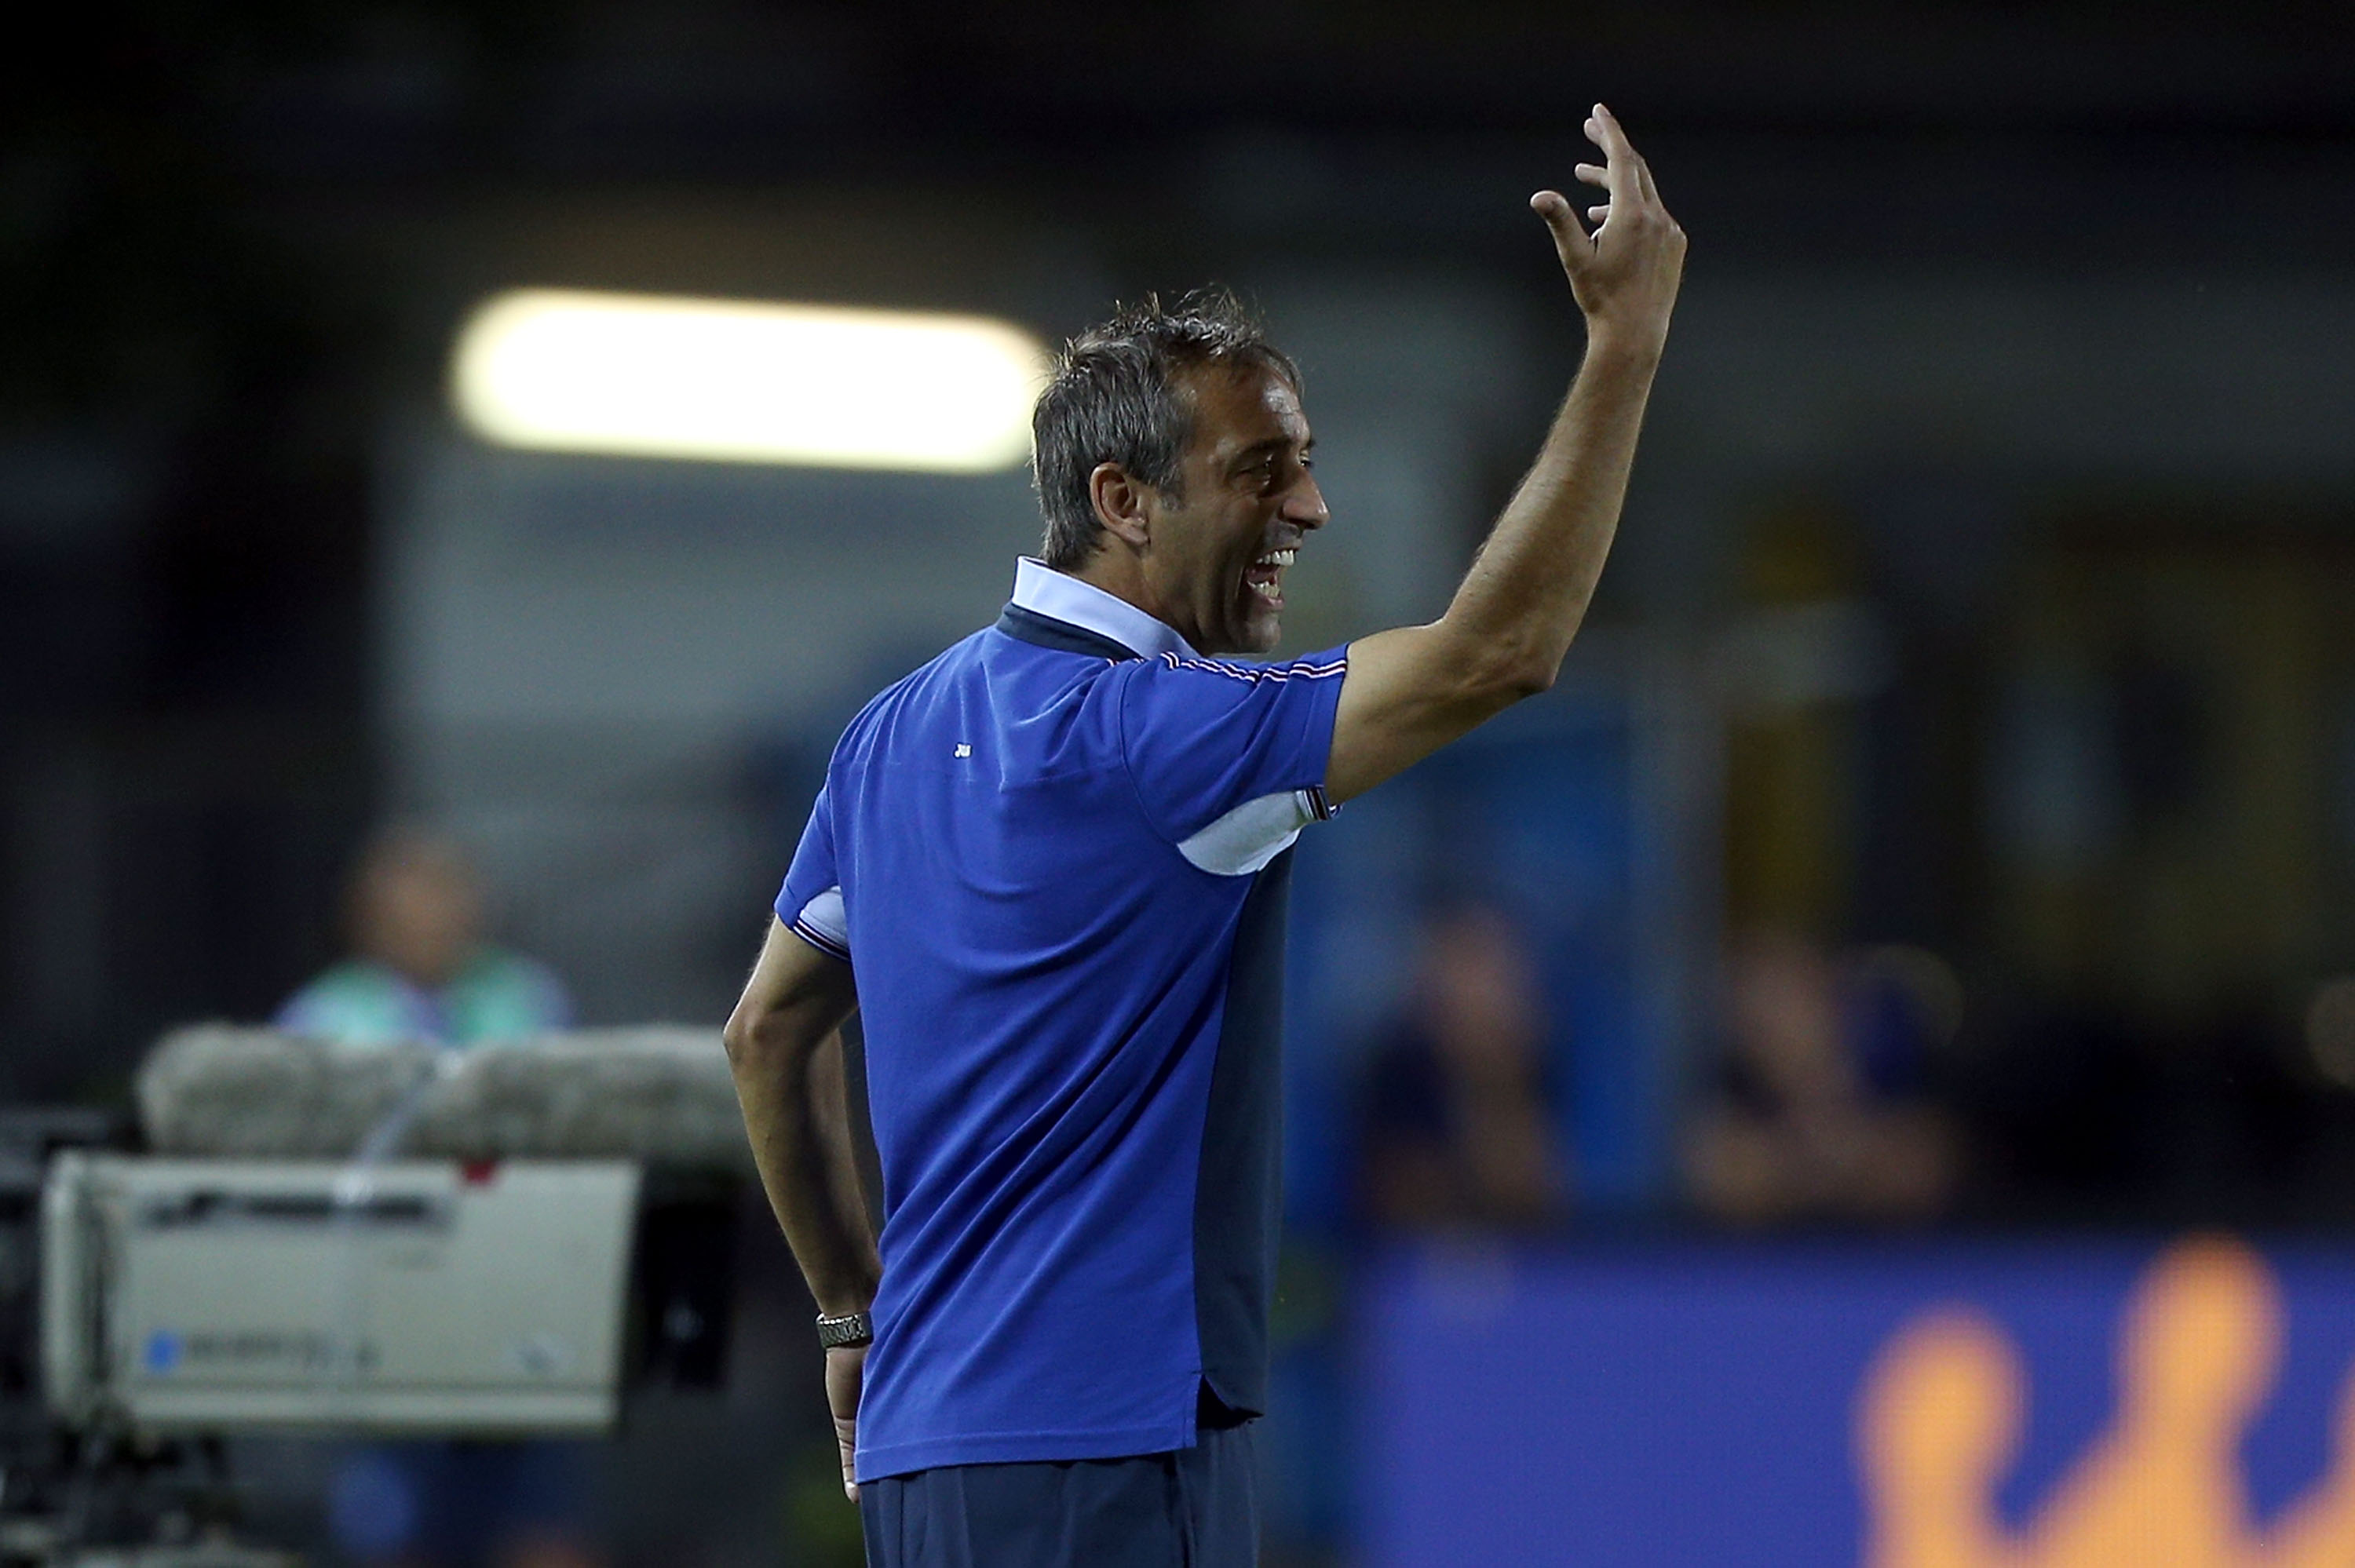 EMPOLI, ITALY - AUGUST 21: Marco Giampaolo manager of UC Sampdoria gives instructions during the Serie A match between Empoli FC and UC Sampdoria at Stadio Carlo Castellani on August 21, 2016 in Empoli, Italy. (Photo by Gabriele Maltinti/Getty Images)